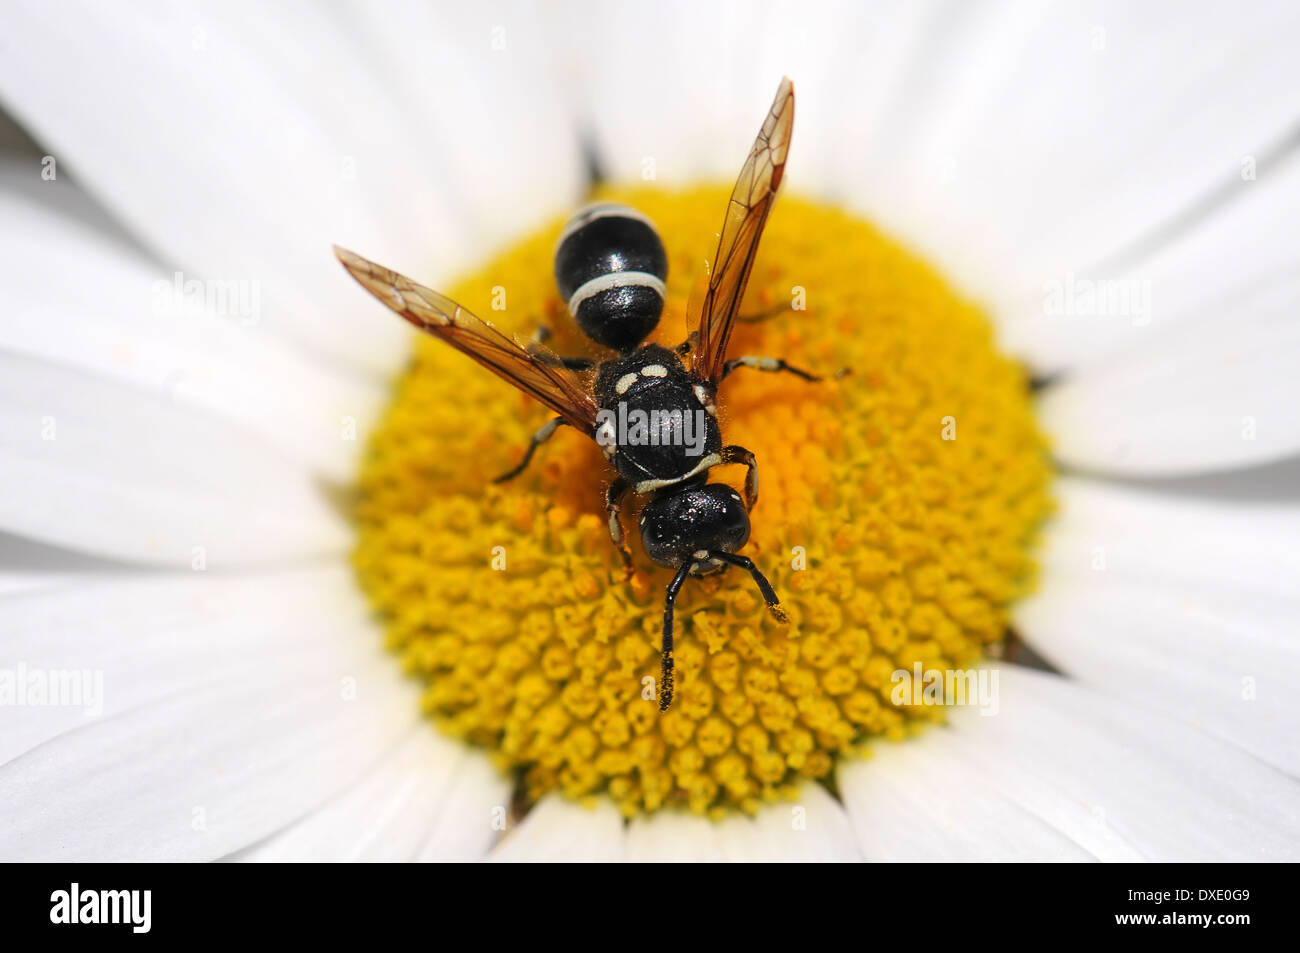 Wasp feed on pollen - Stock Image